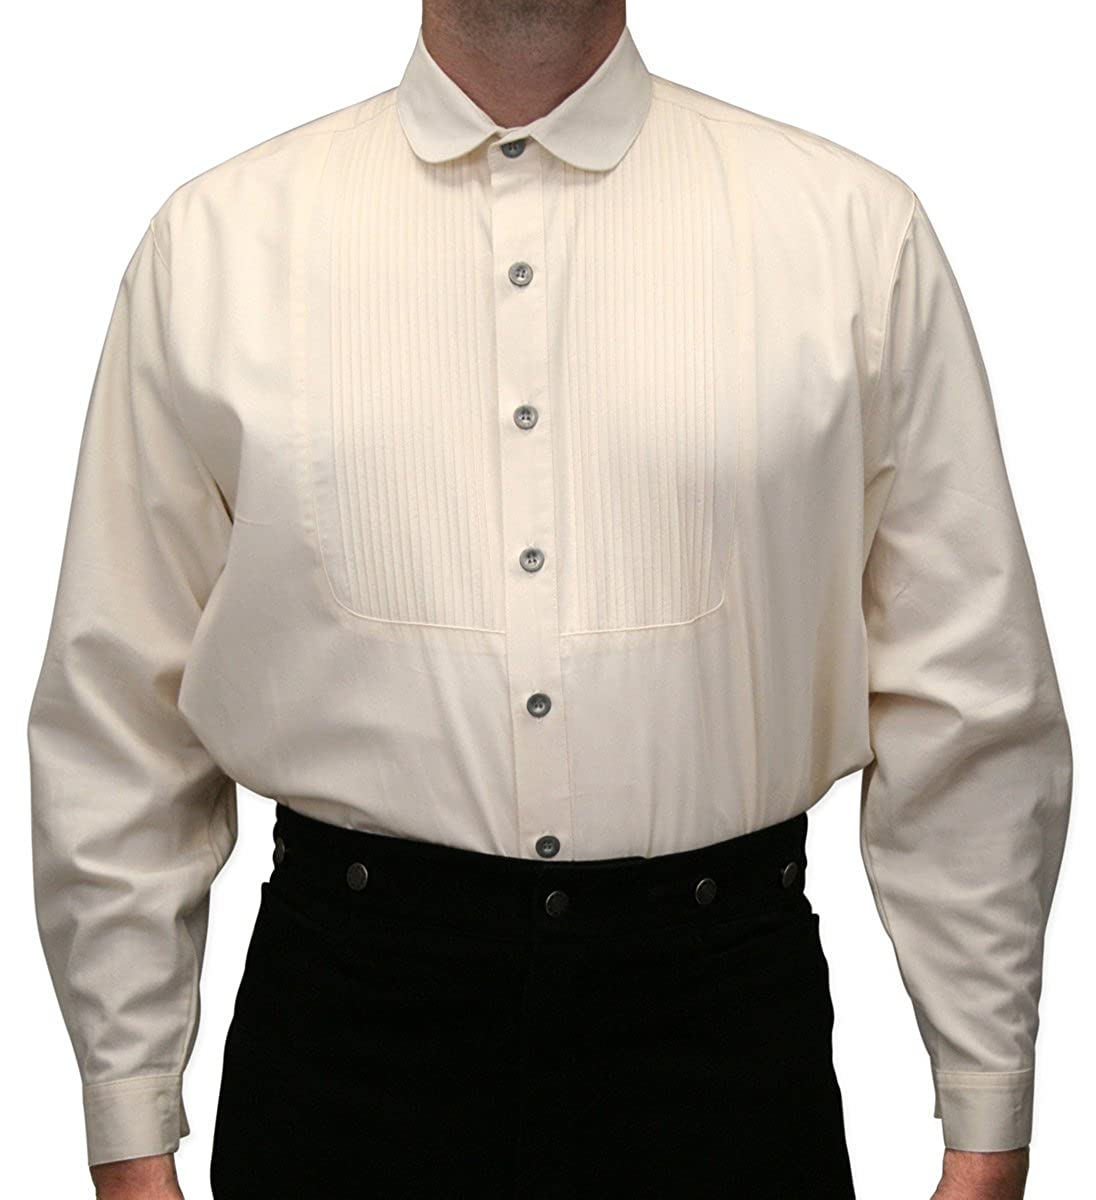 Men's Steampunk Clothing, Costumes, Fashion Historical Emporium Mens Pleated Edwardian Round Club Collar Dress Shirt $59.95 AT vintagedancer.com